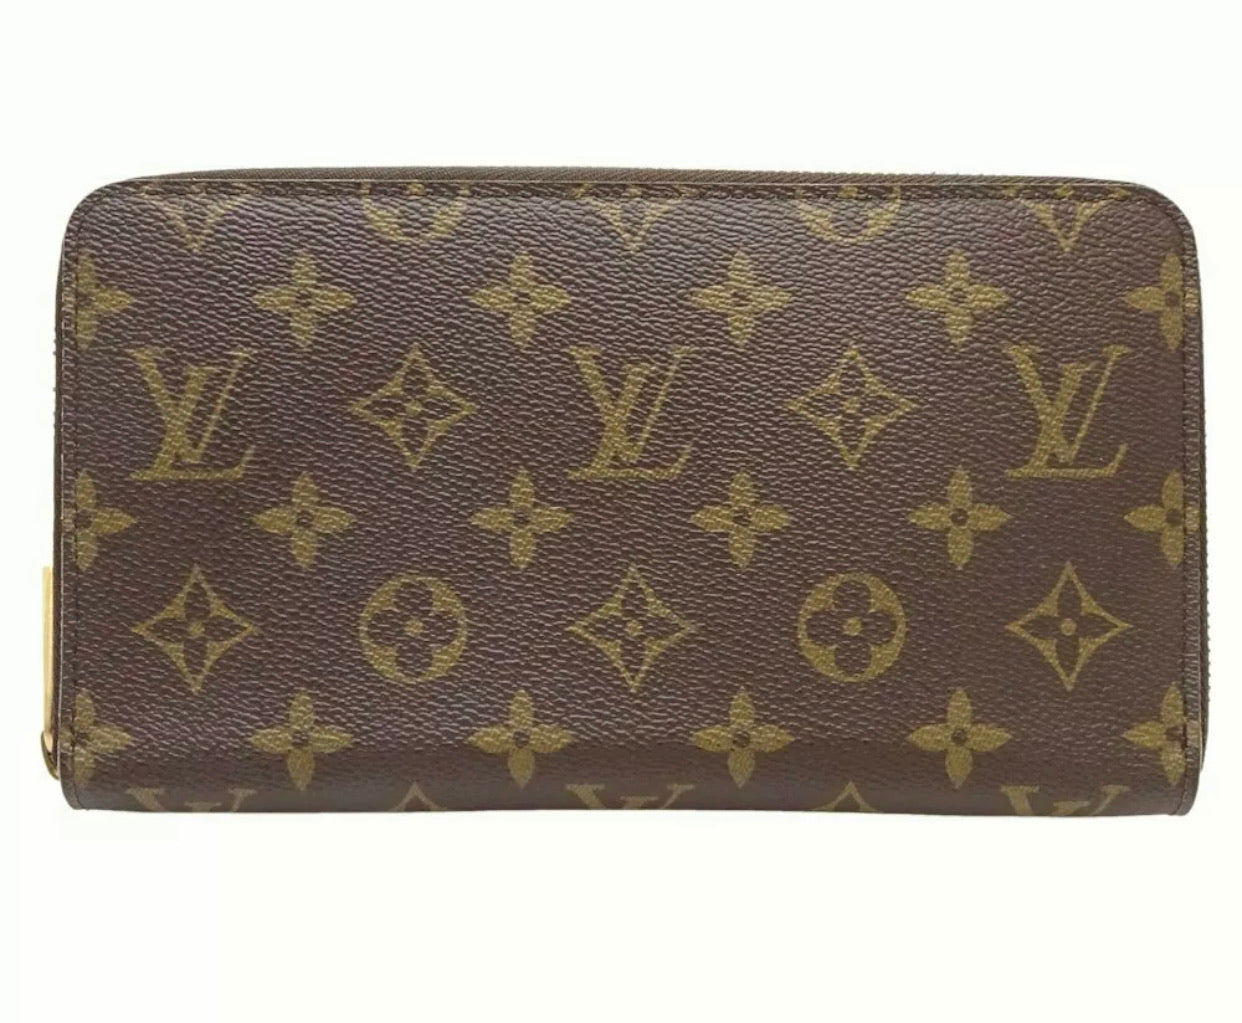 Louis Vuitton Monogram Zippy Organizer